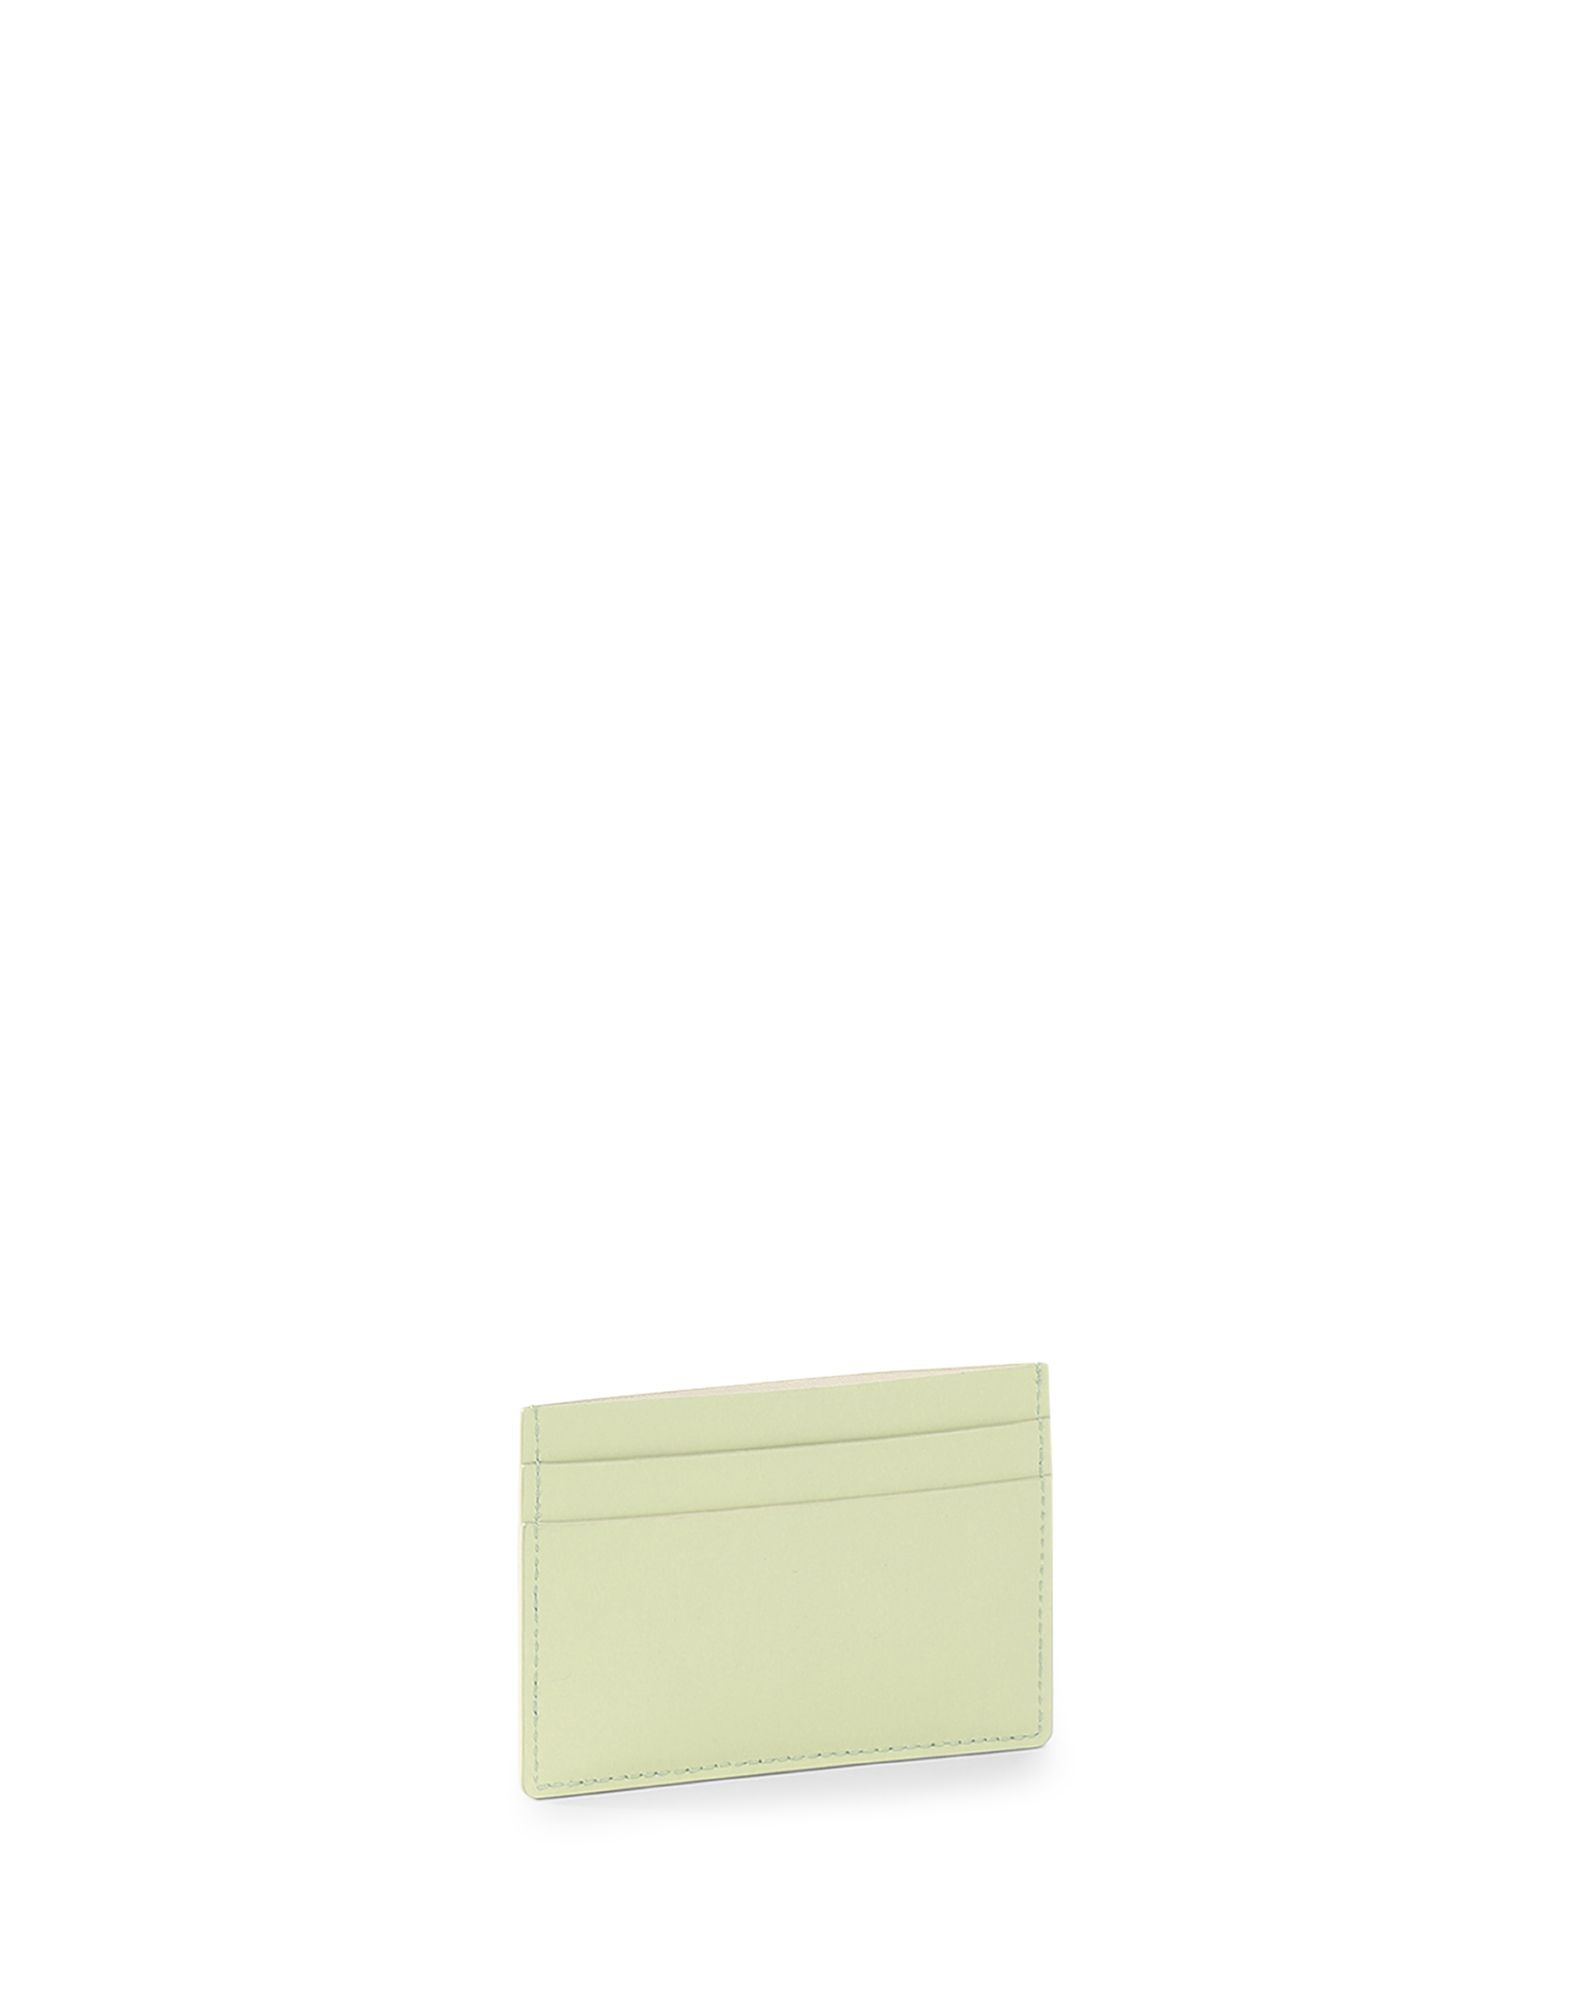 Credit card holder - JIL SANDER Online Store